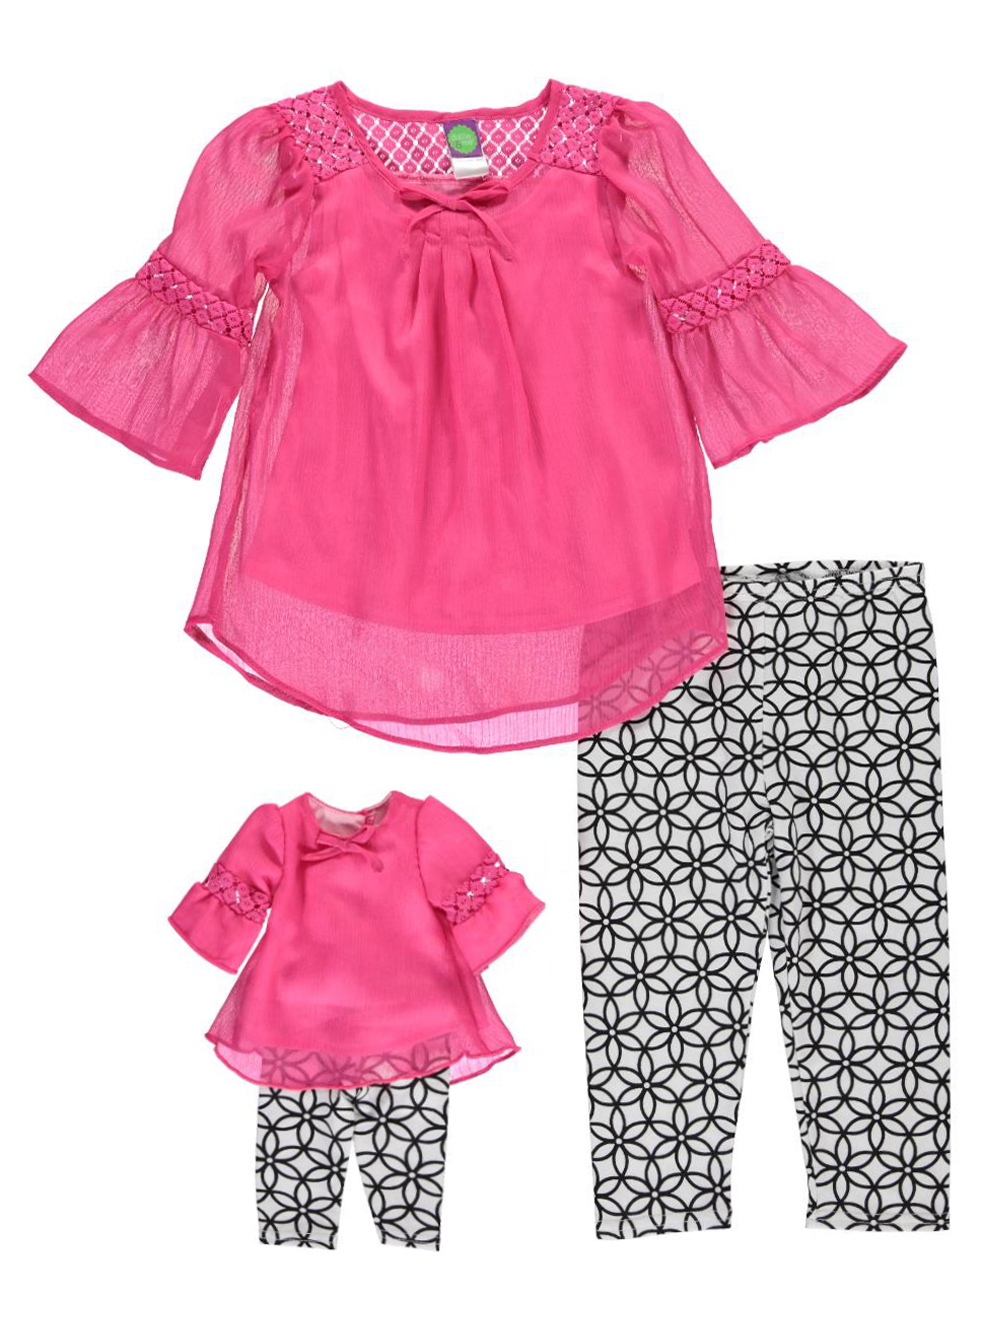 Image of Dollie  Me Big Girls Mad for Mod 2Piece Outfit with Doll Outfit Sizes 7  16  whitefuchsia 7